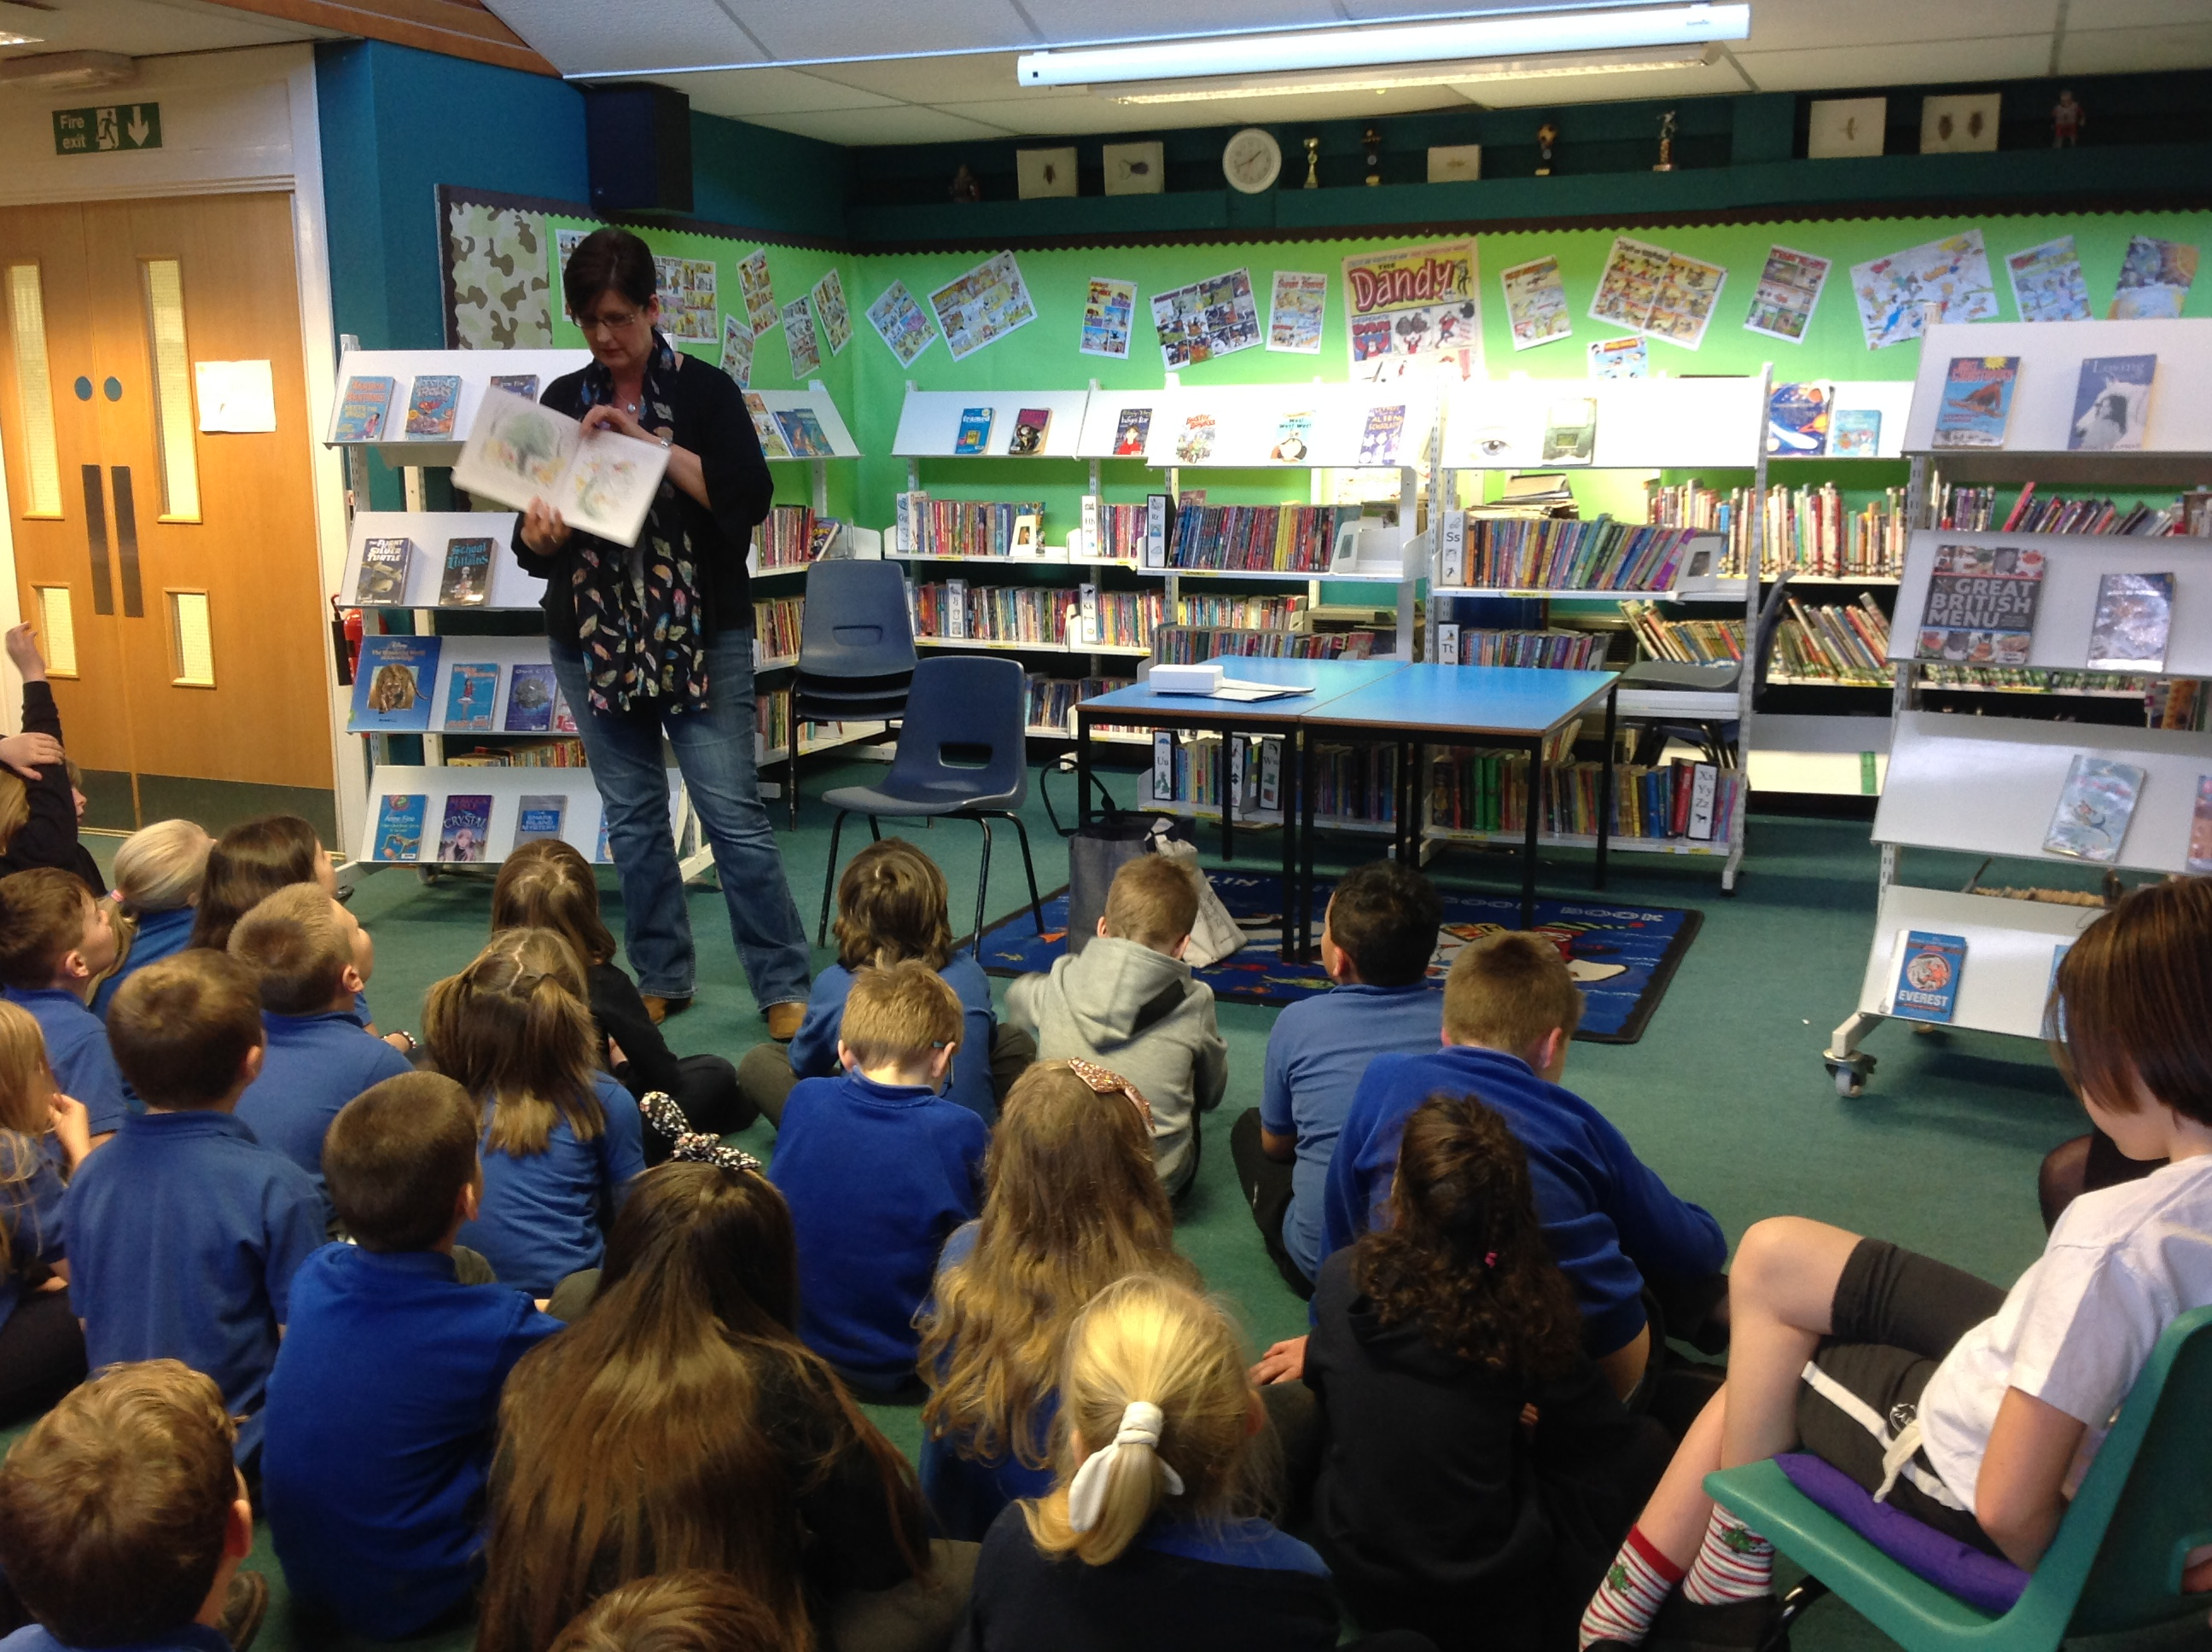 World Of Work Week at Pitlochry Primary School